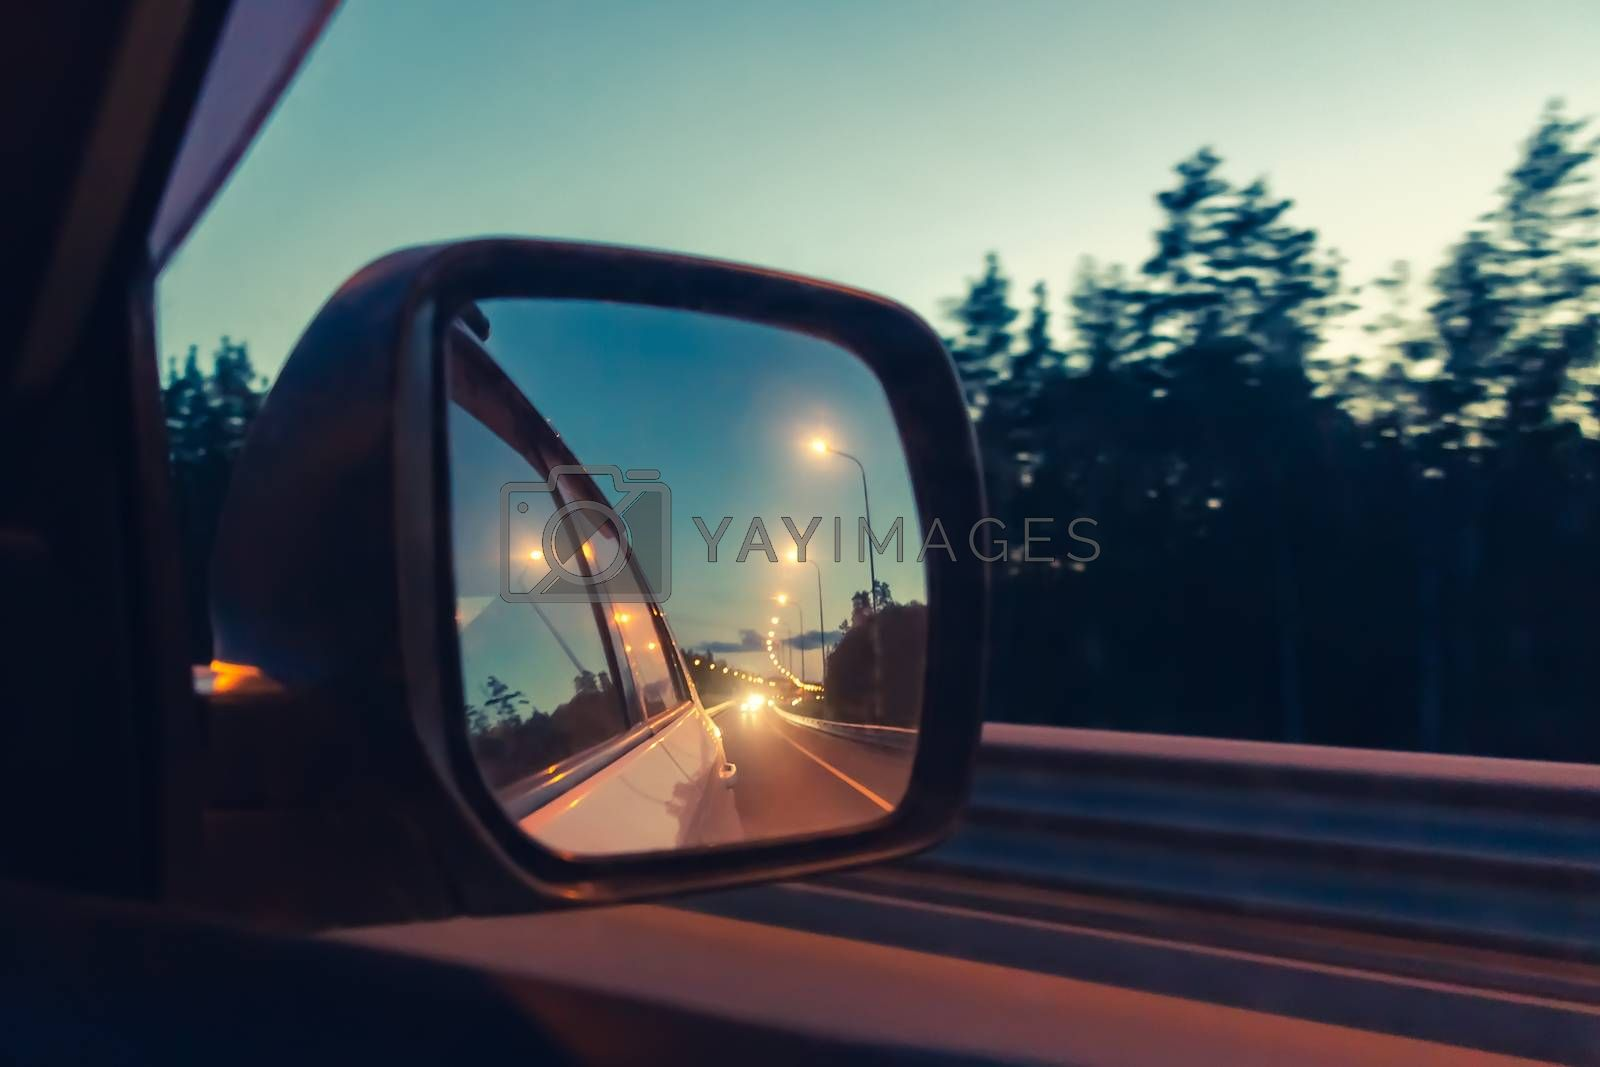 Night highway in the side mirror while driving - photo, image. Soft focus by galsand